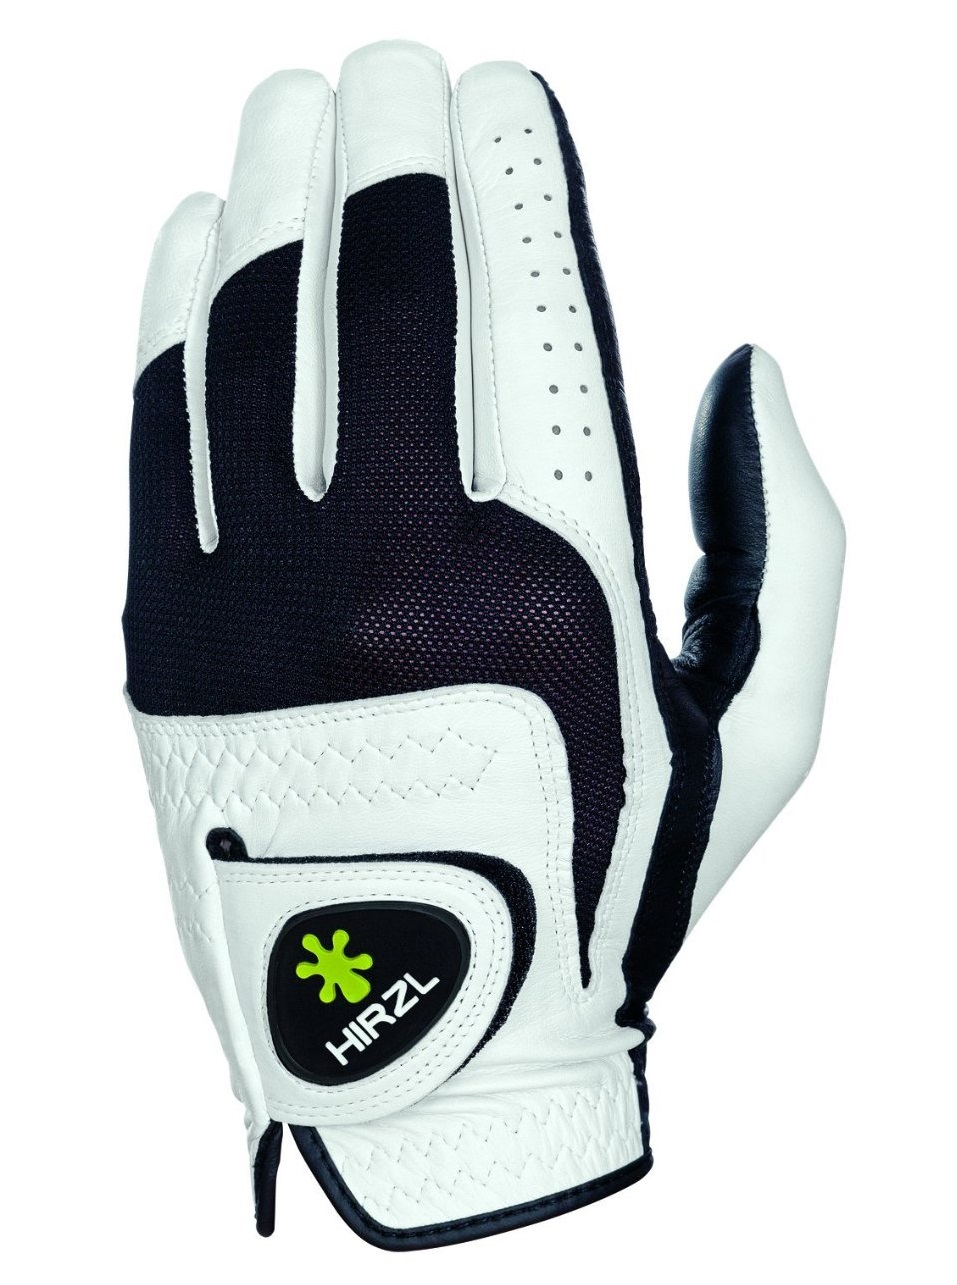 HIRZL Mens Golf Gloves